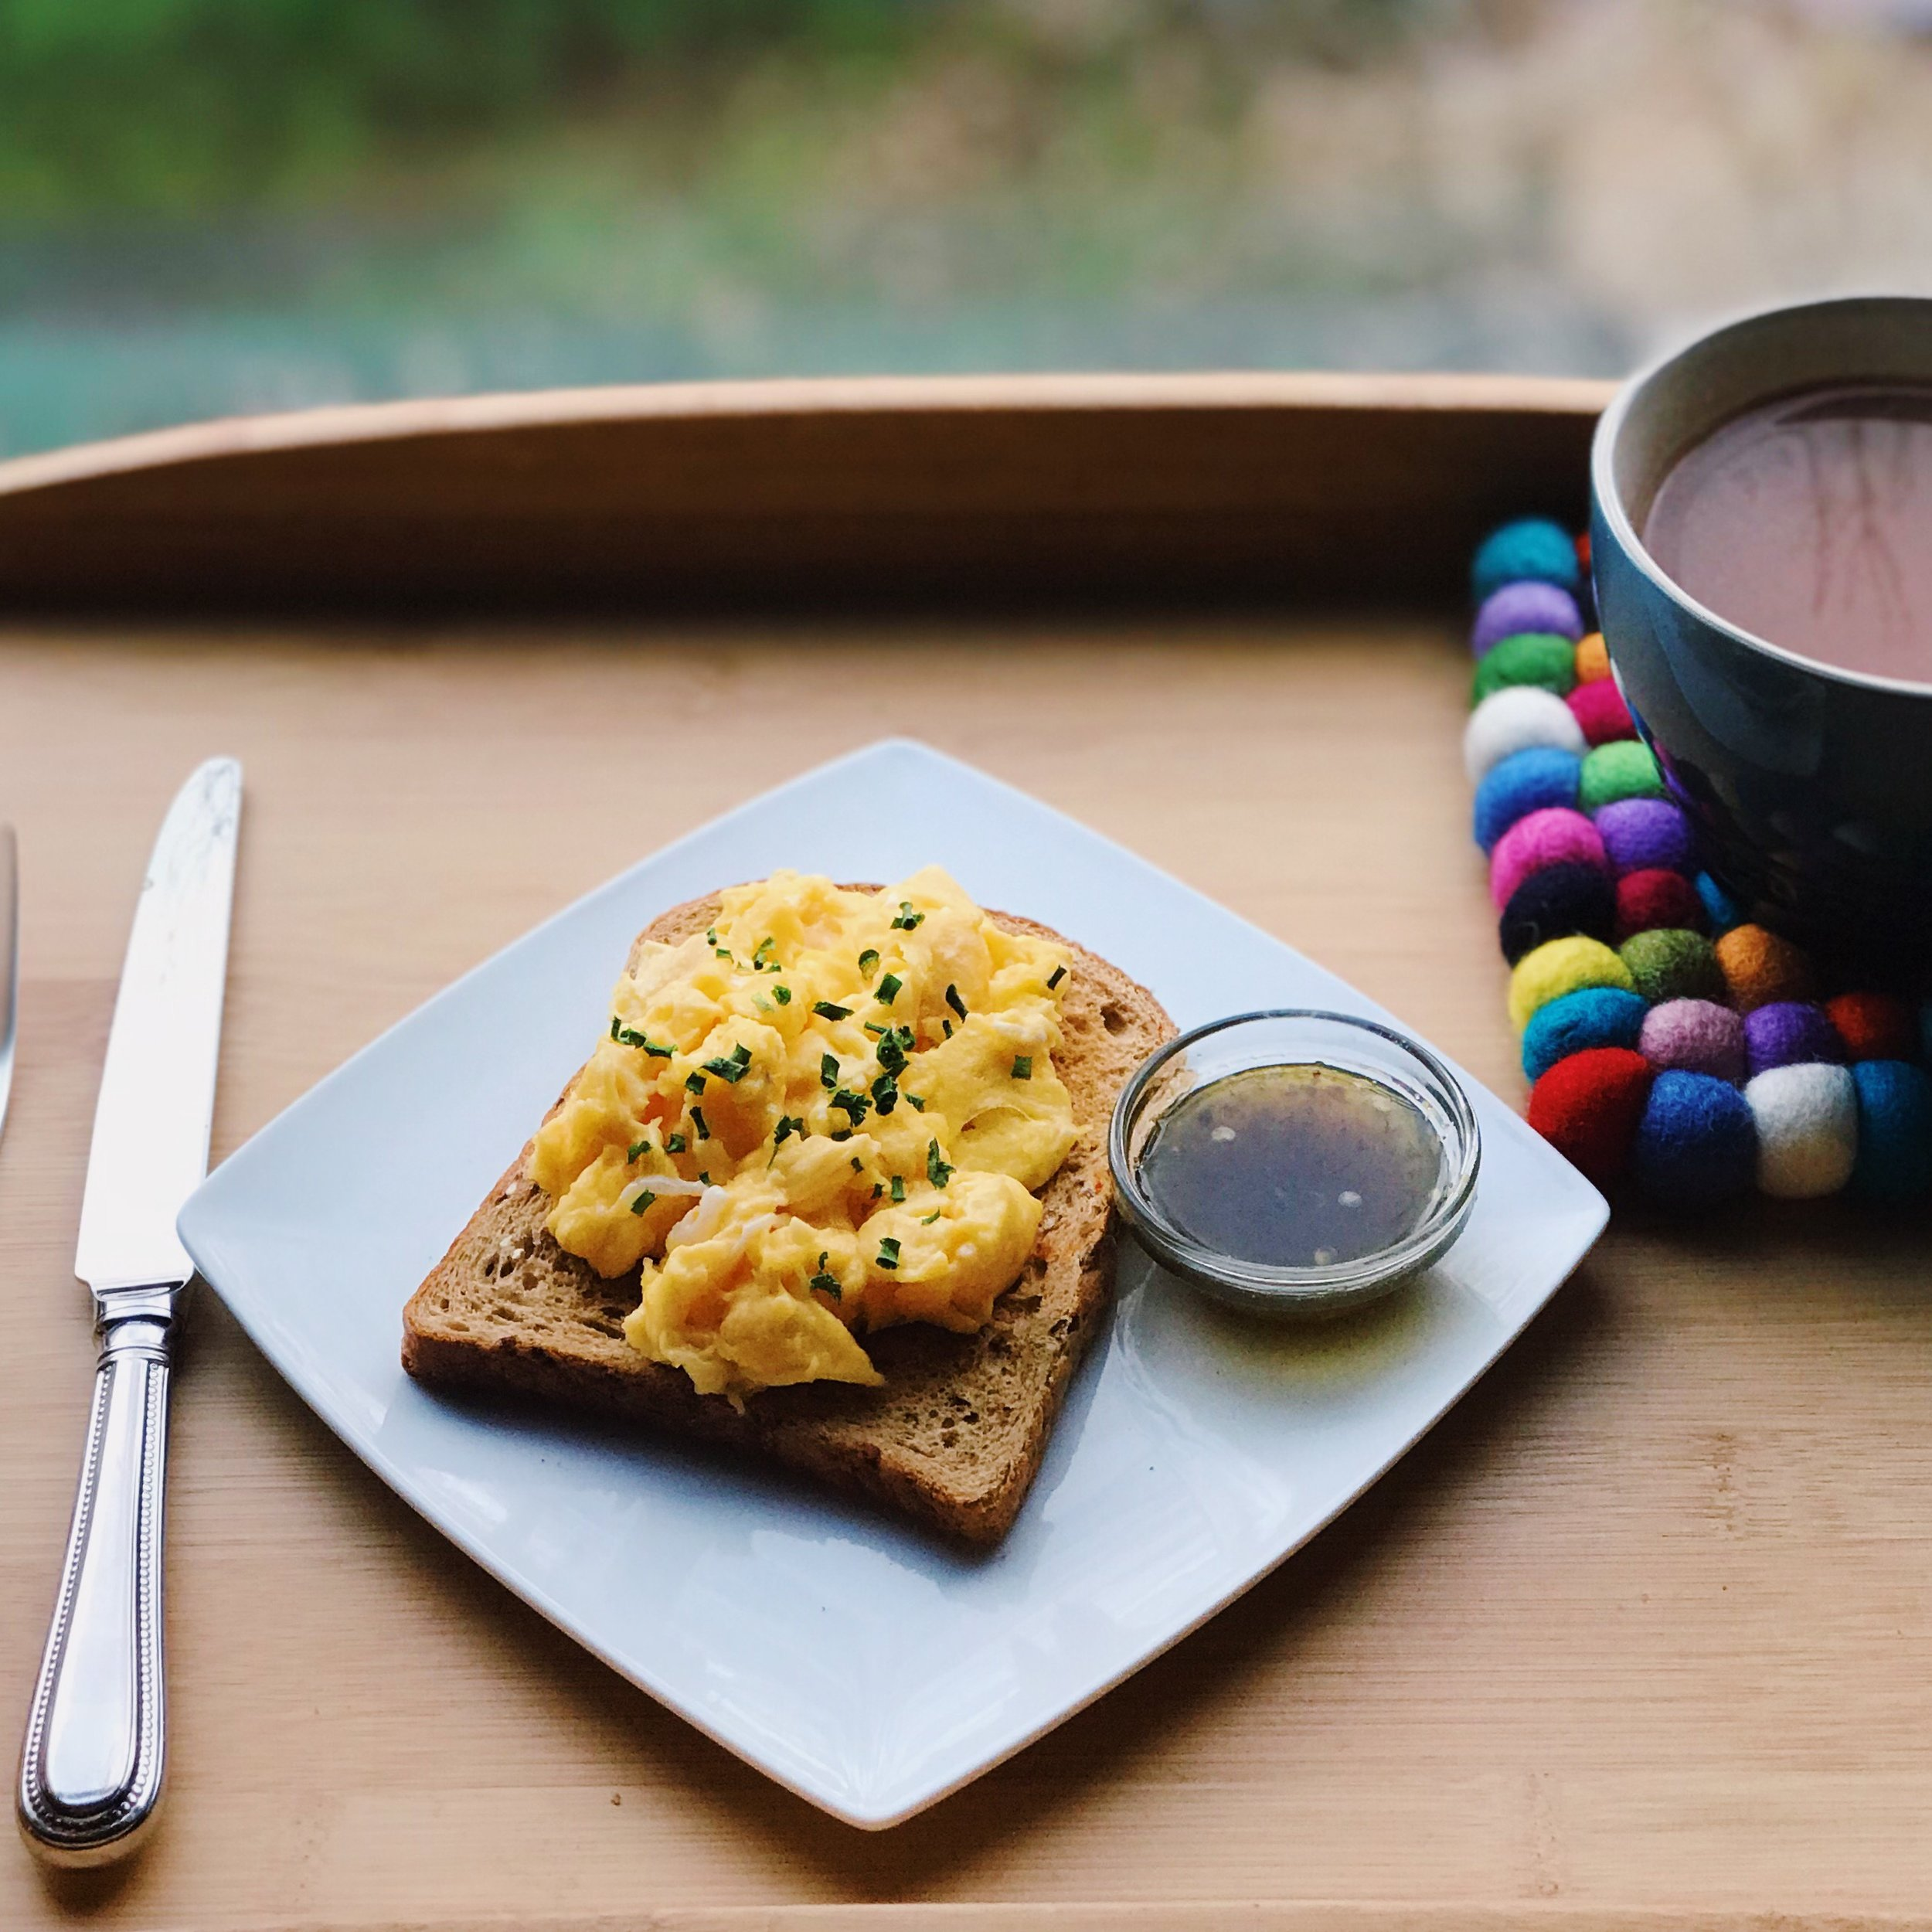 Eggs and Jalapeño Jam is a incredible combination. Try serving it with scrambled egg, drizzling over poached egg, or even with egg & soldiers smothering jalapeño jam on toast before dipping into a a runny egg.